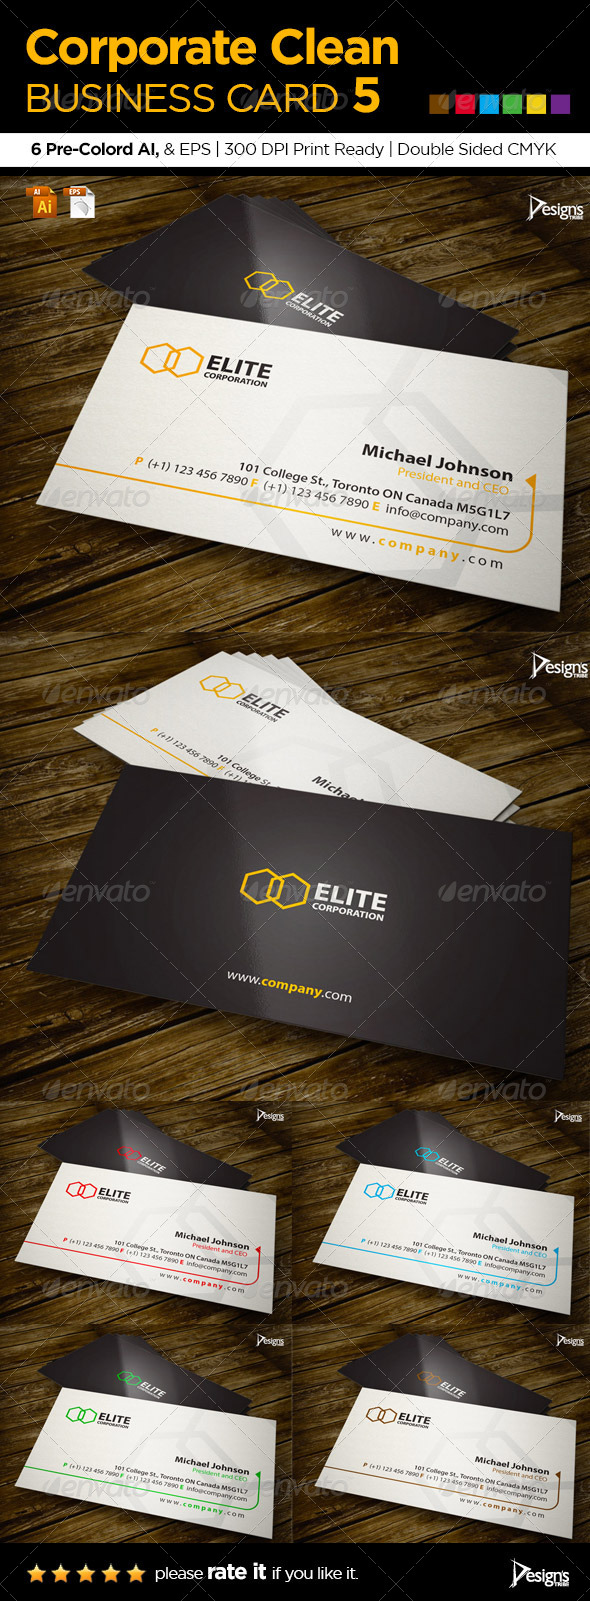 Corporate Clean Business Card 5 - Corporate Business Cards